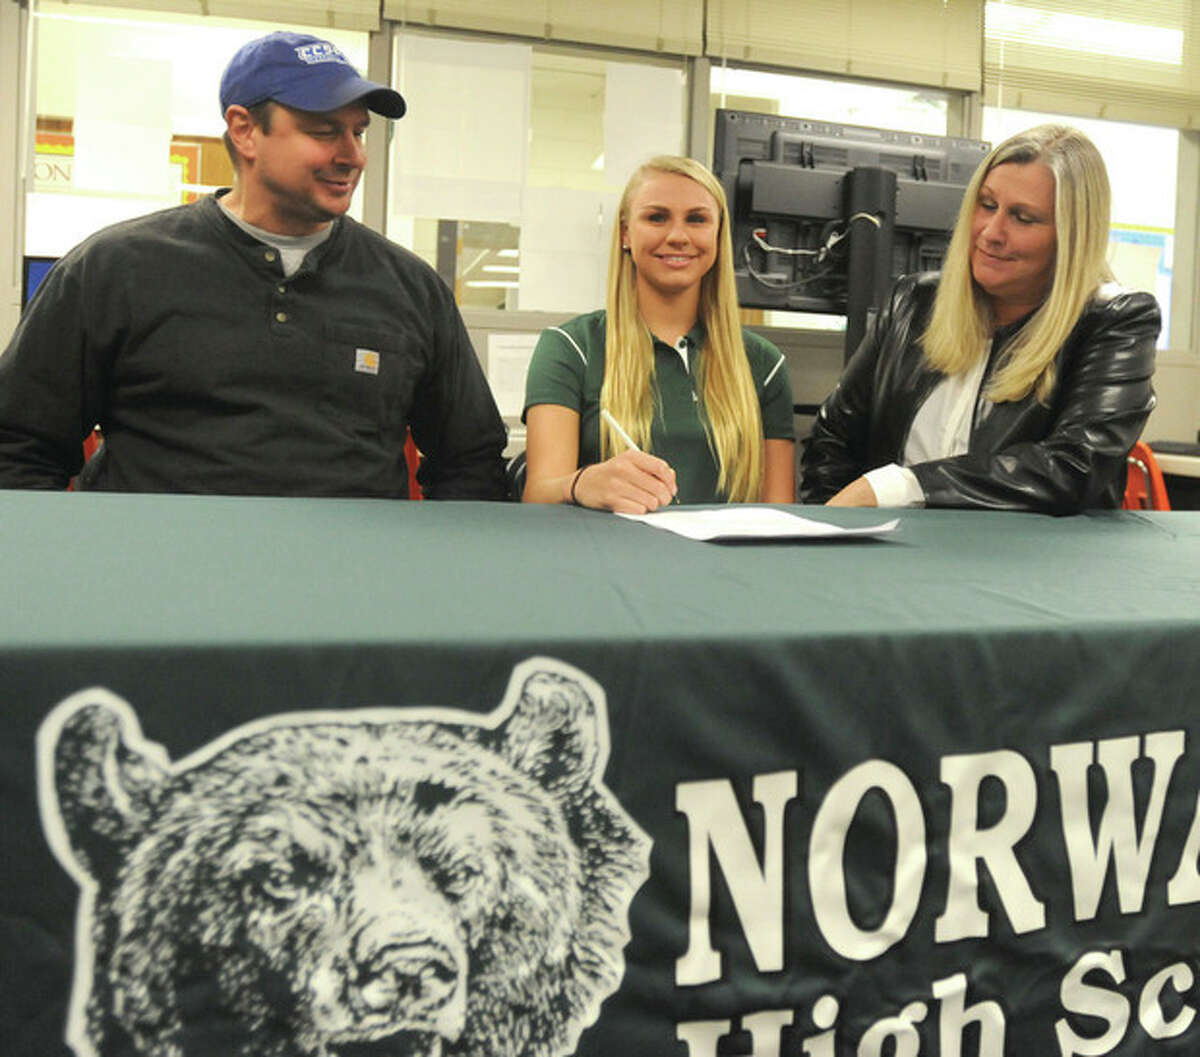 Hour photo/John Nash Norwalk High senior swimmer Lauren Czulewicz sits between her parents Don and Ellie before she signs an official national letter of intent to compete at Central Connecticut State University next year.